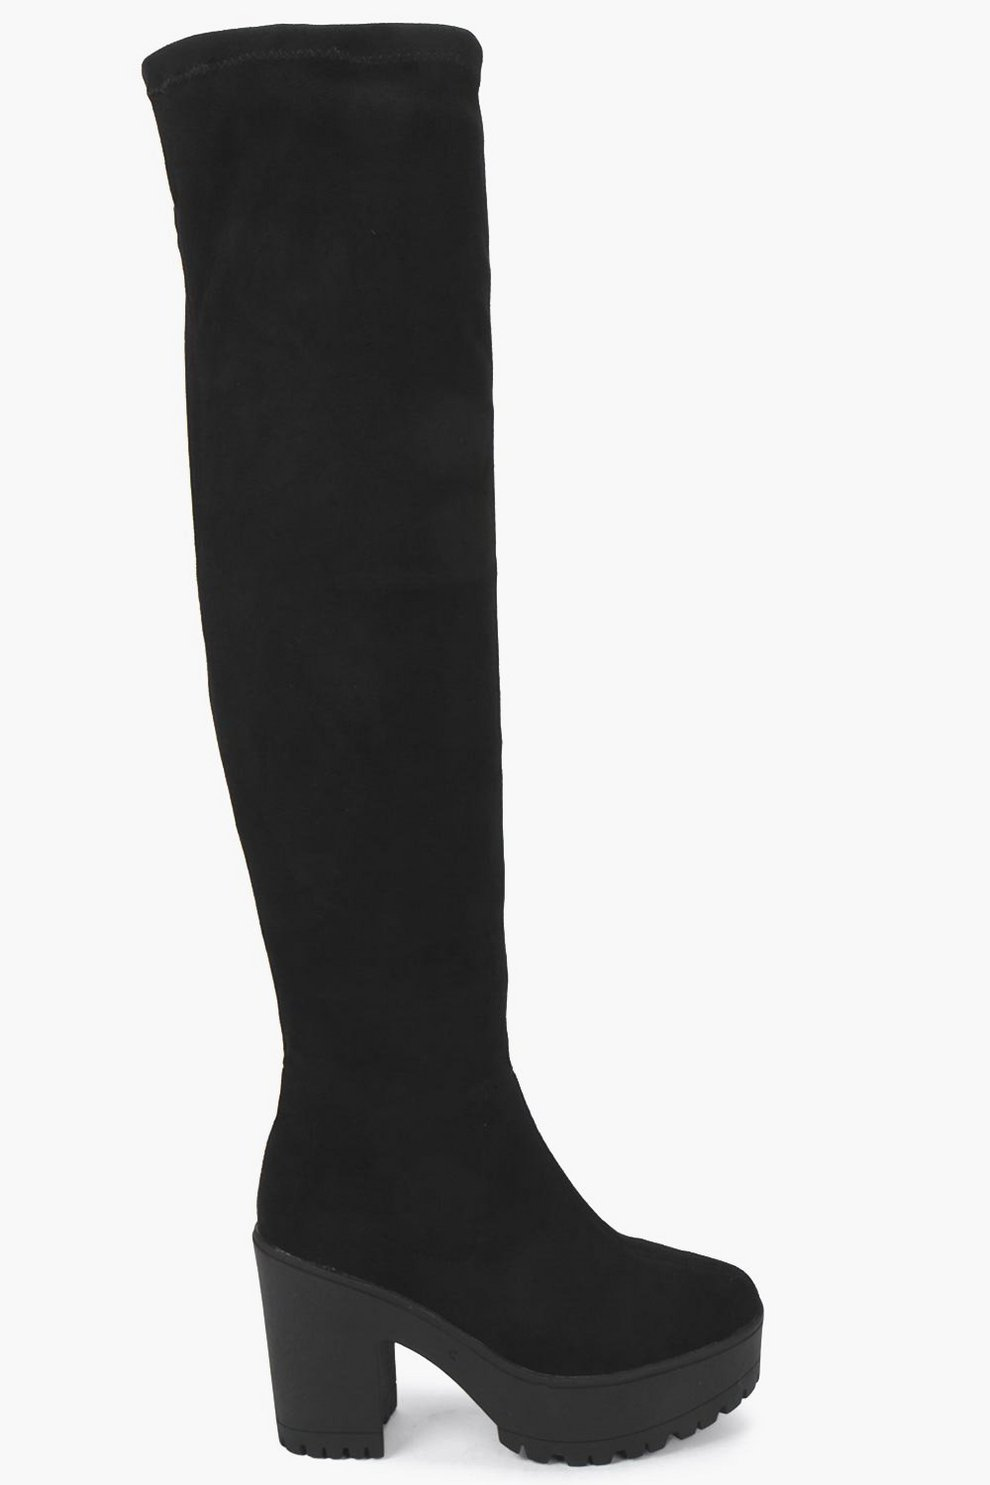 99a93ce18c87 Cleated Over The Knee Boots